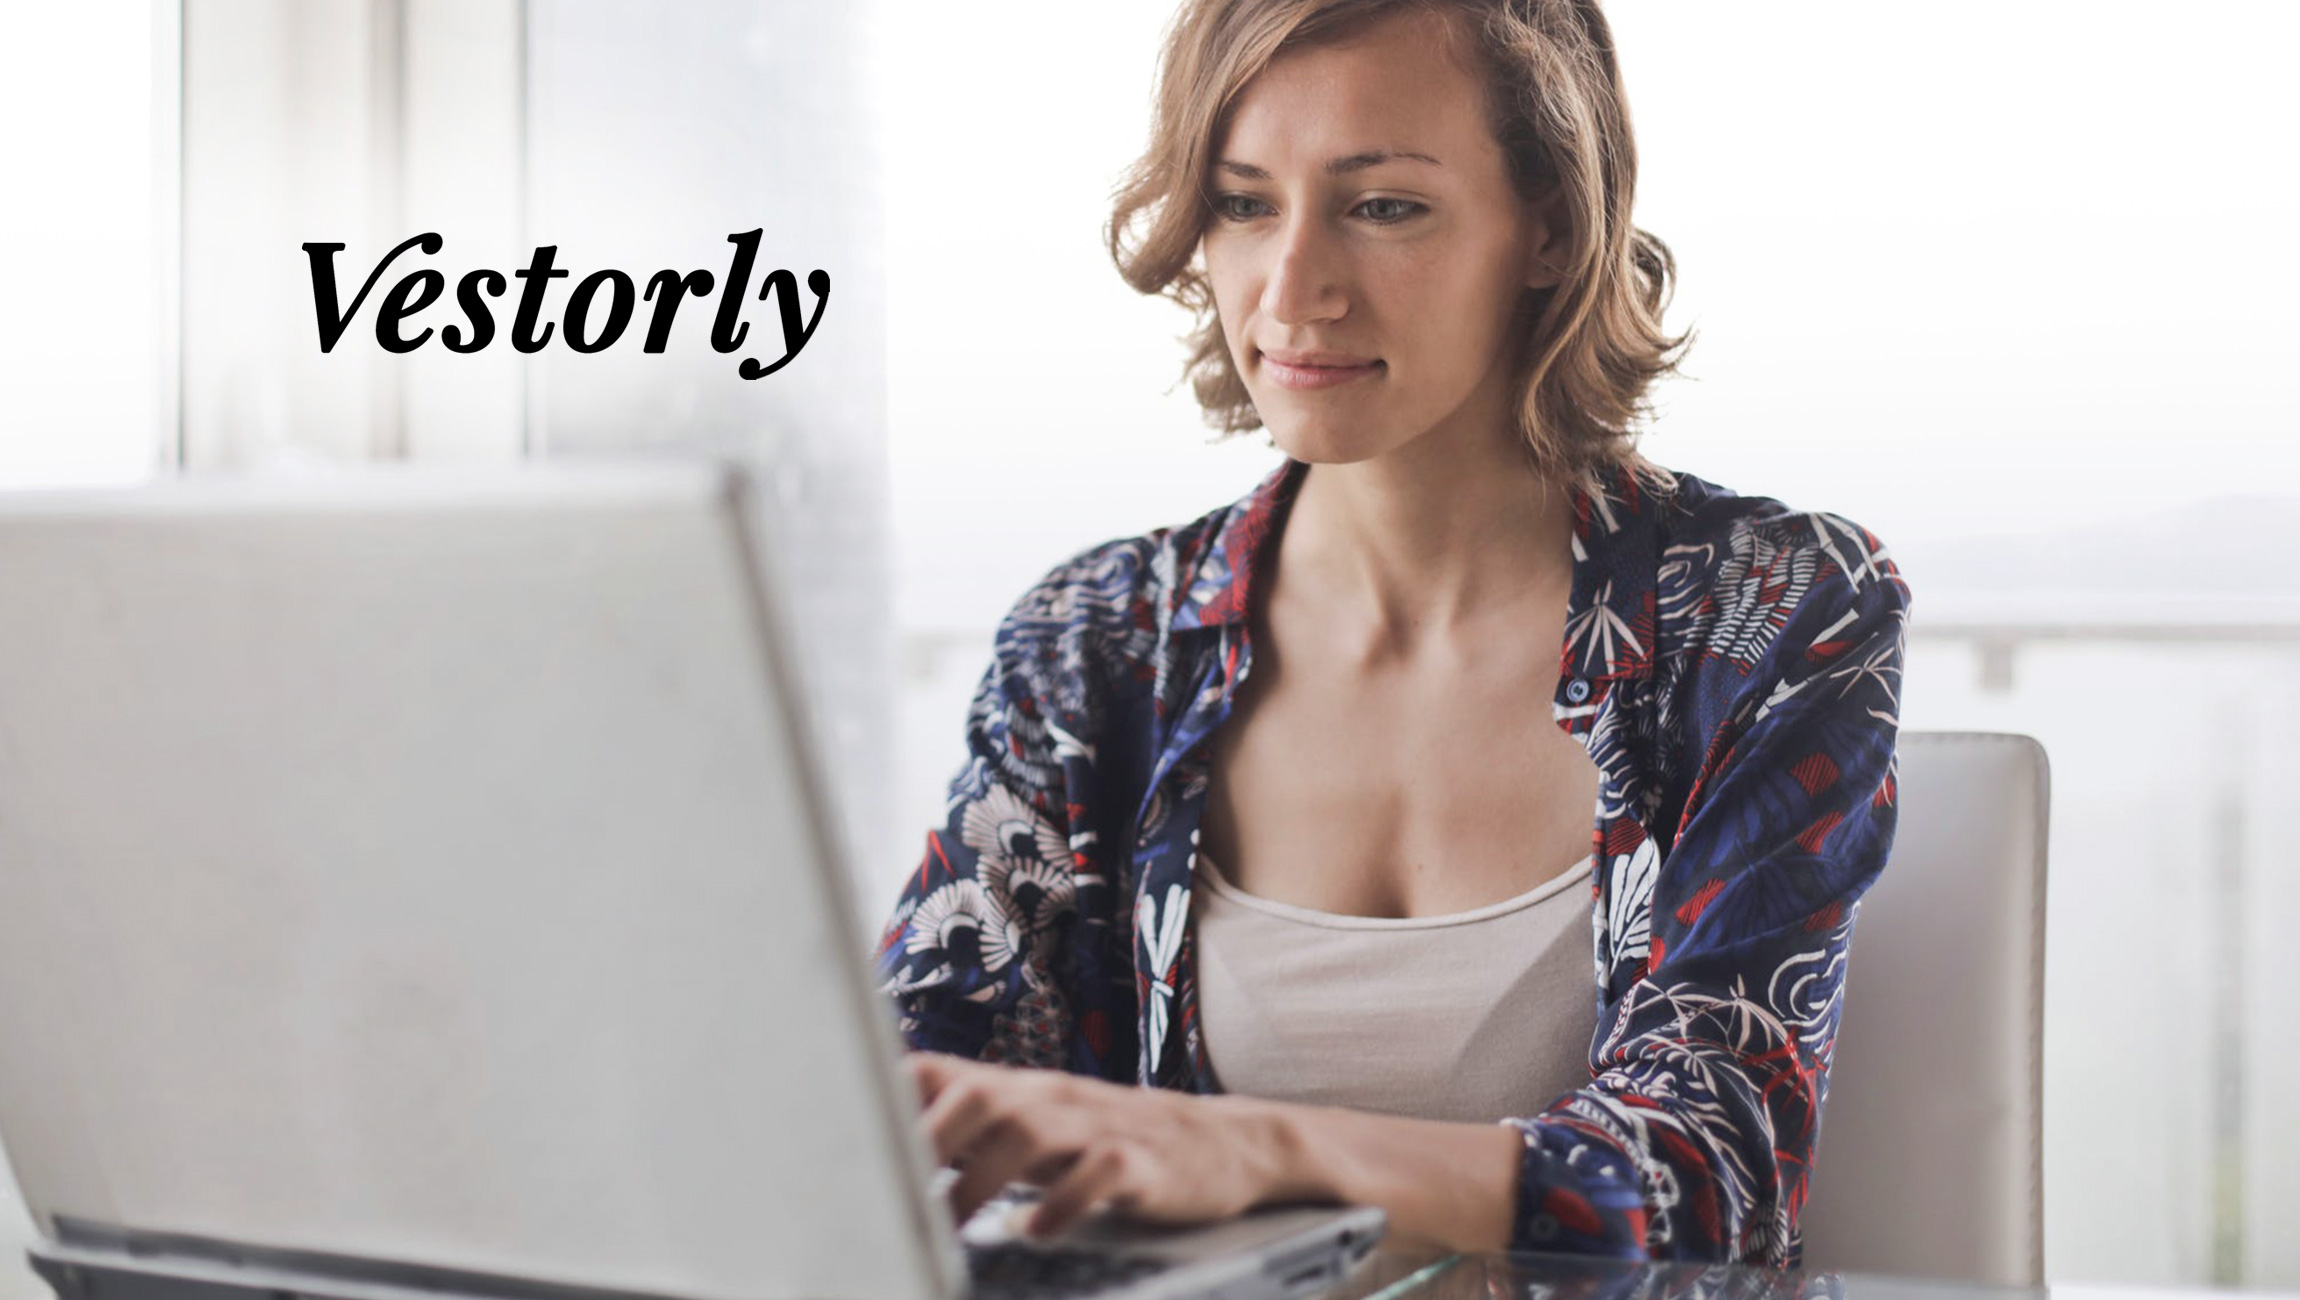 Vestorly Integrates AI-Driven ConteVestorly Integrates AI-Driven Content Curation Engine into Hootsuite to Deliver Right Content at Right Timent Curation Engine into Hootsuite to Deliver Right Content at Right Time